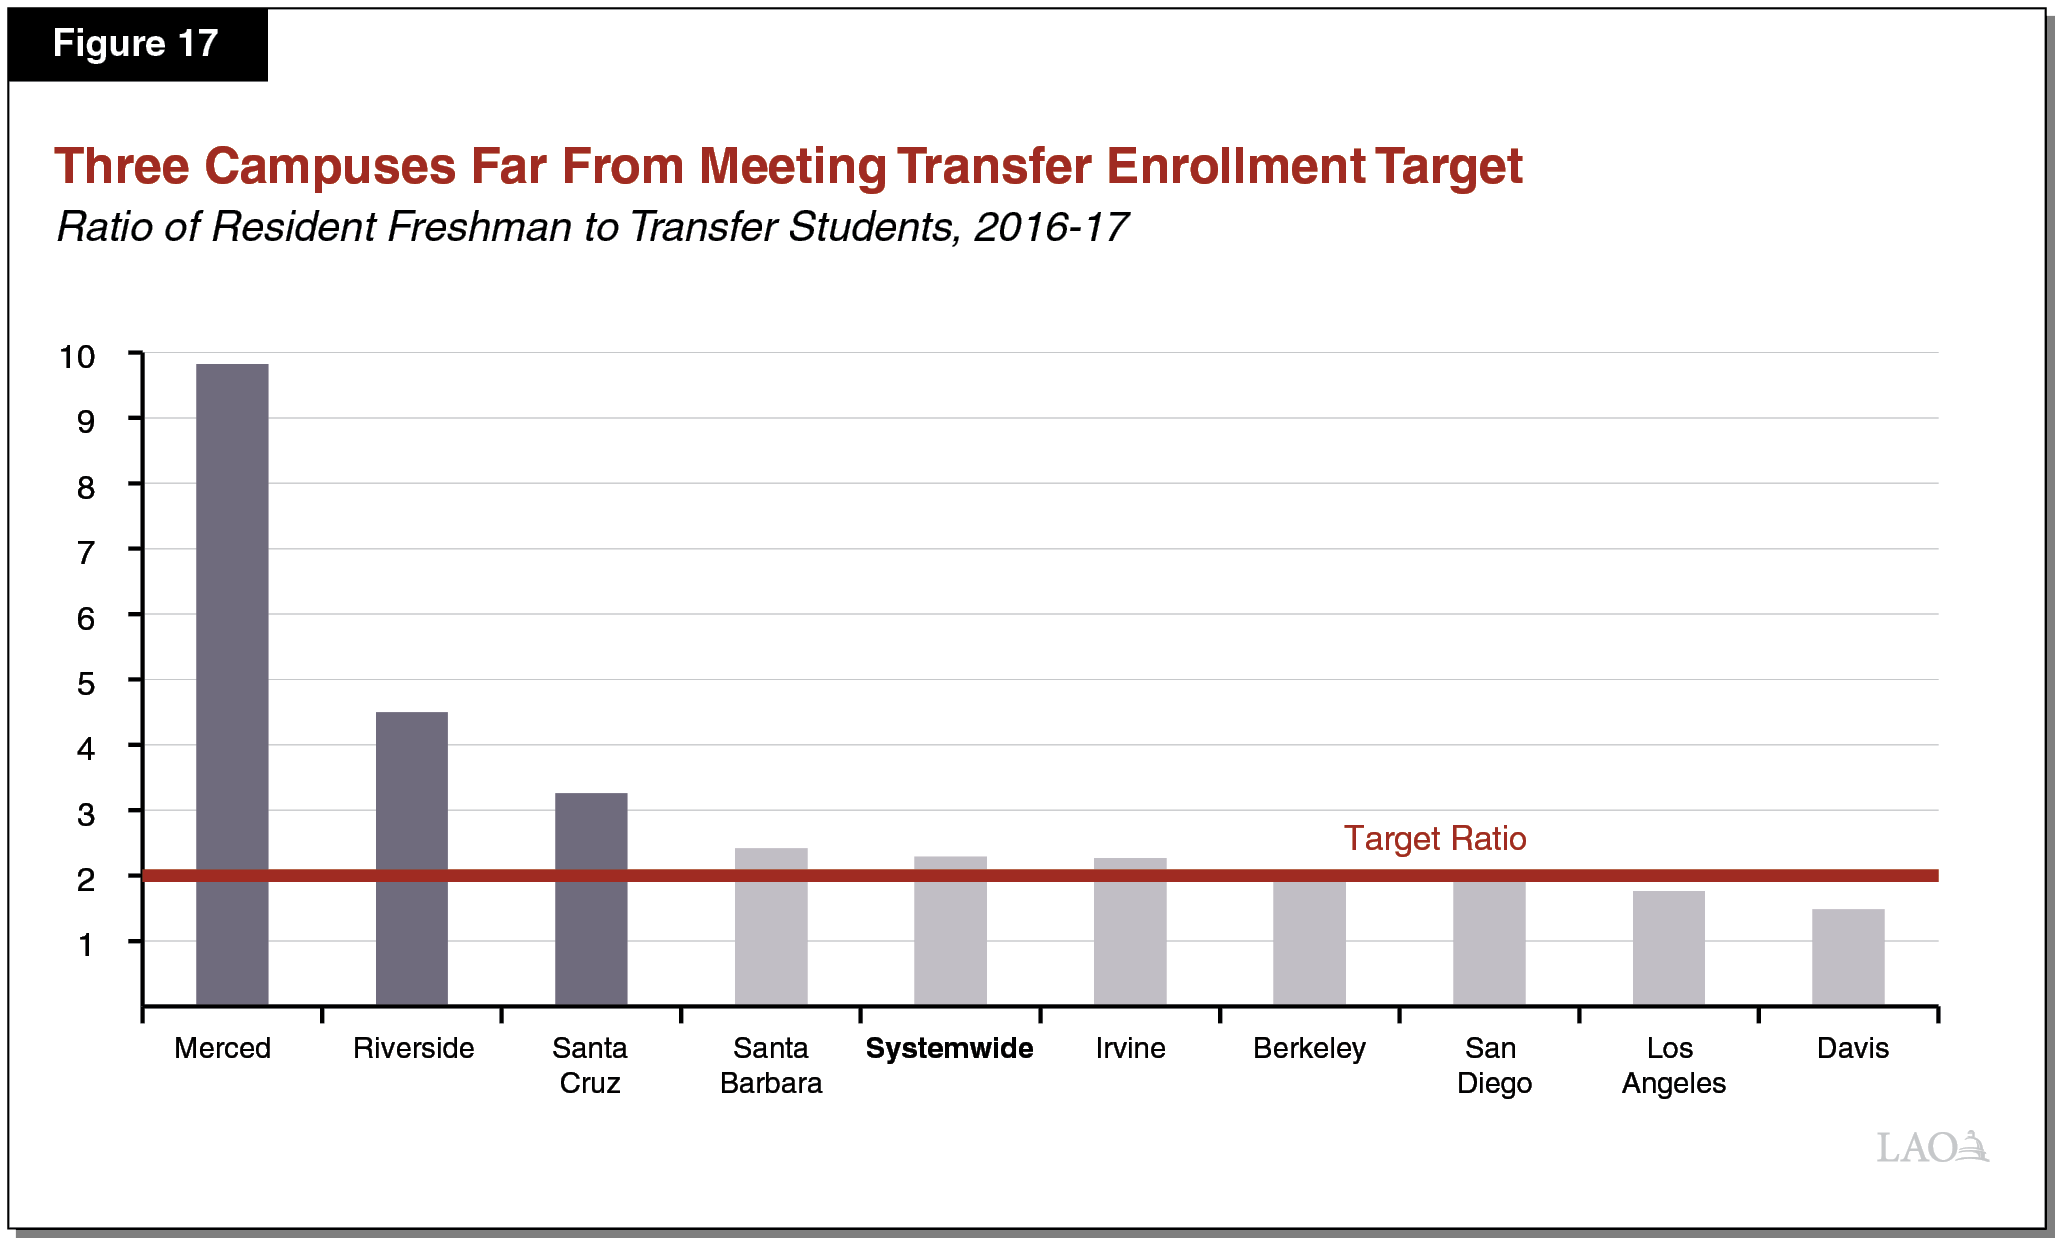 Figure 17 - Three Campuses Far From Meeting Transfer Enrollment Target